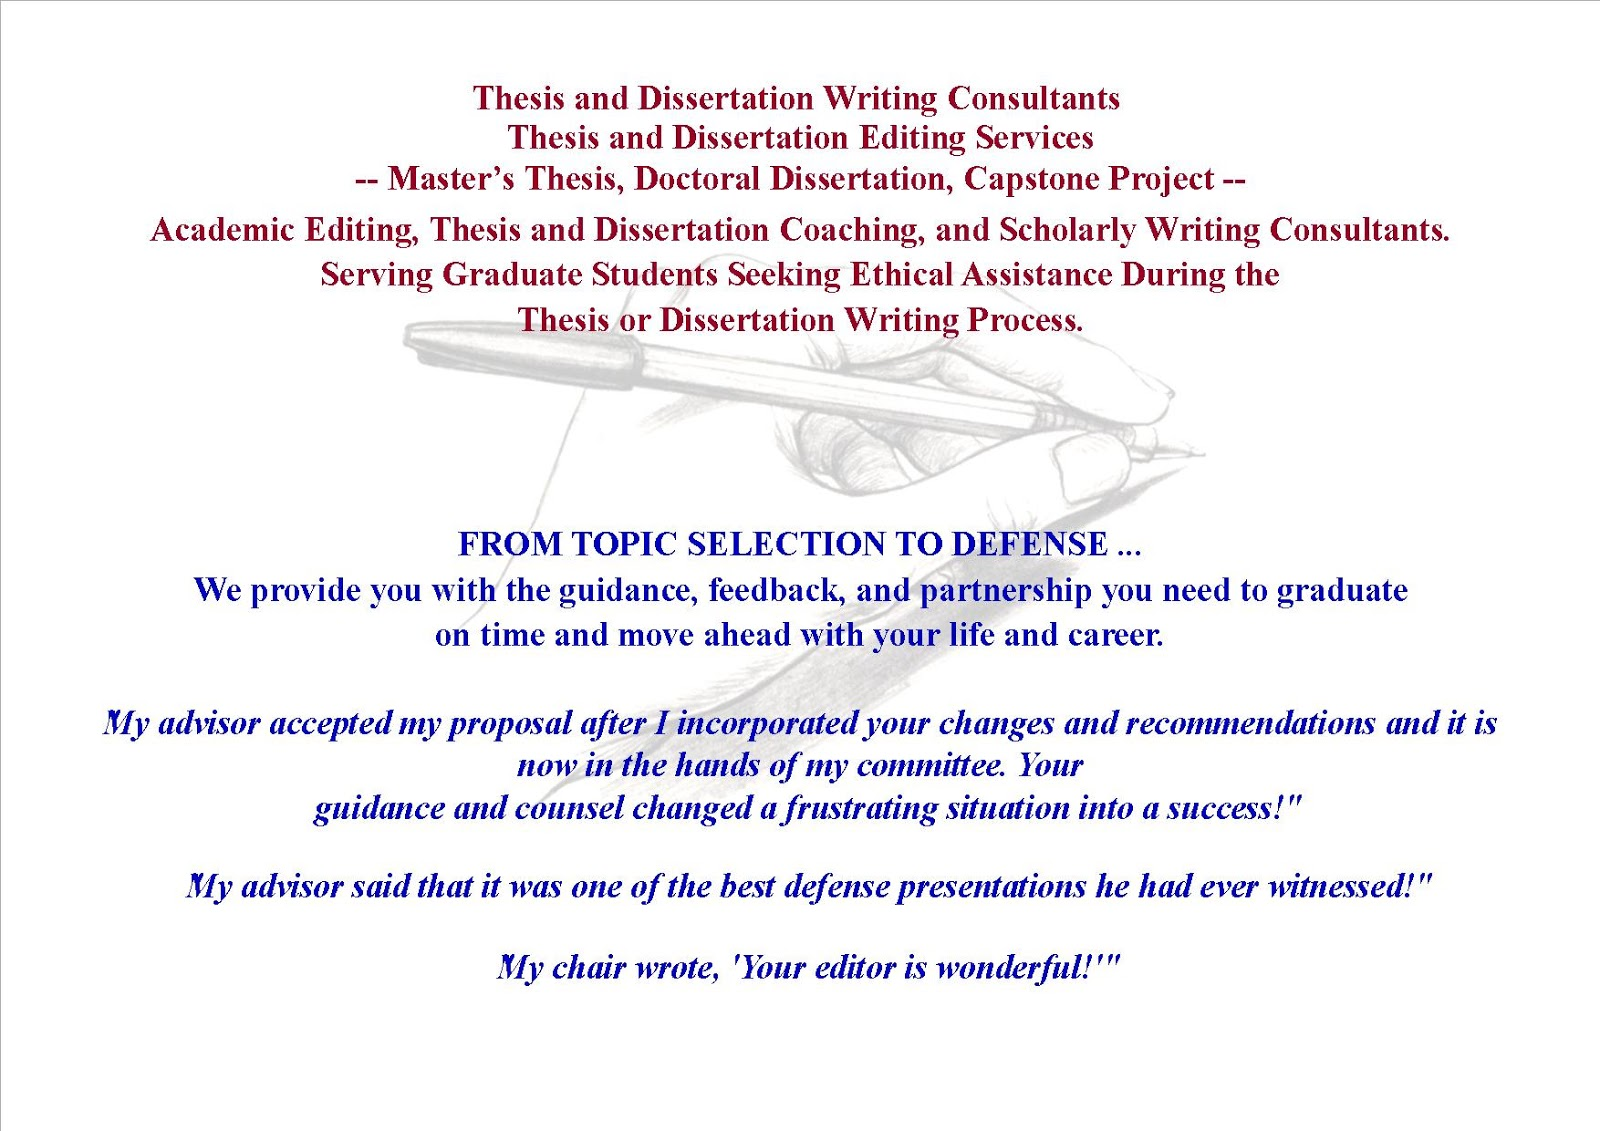 Dissertation consulting service le